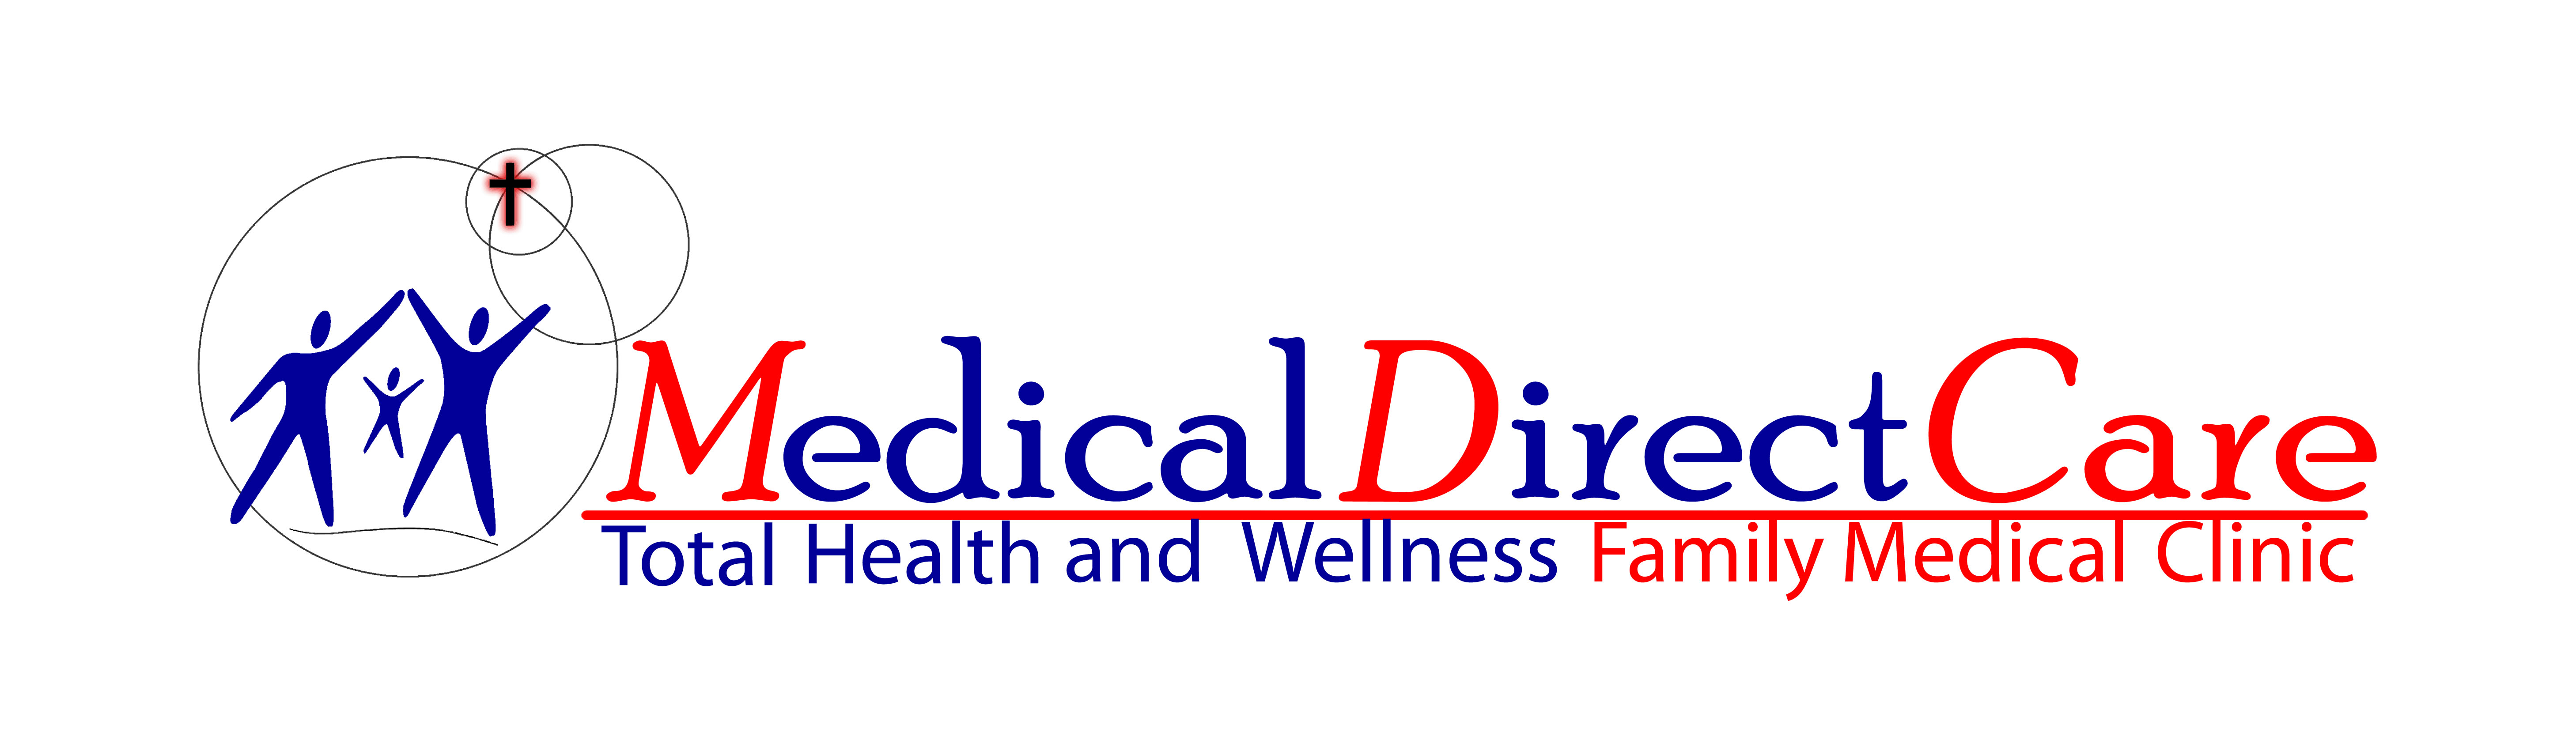 Medical Direct Care